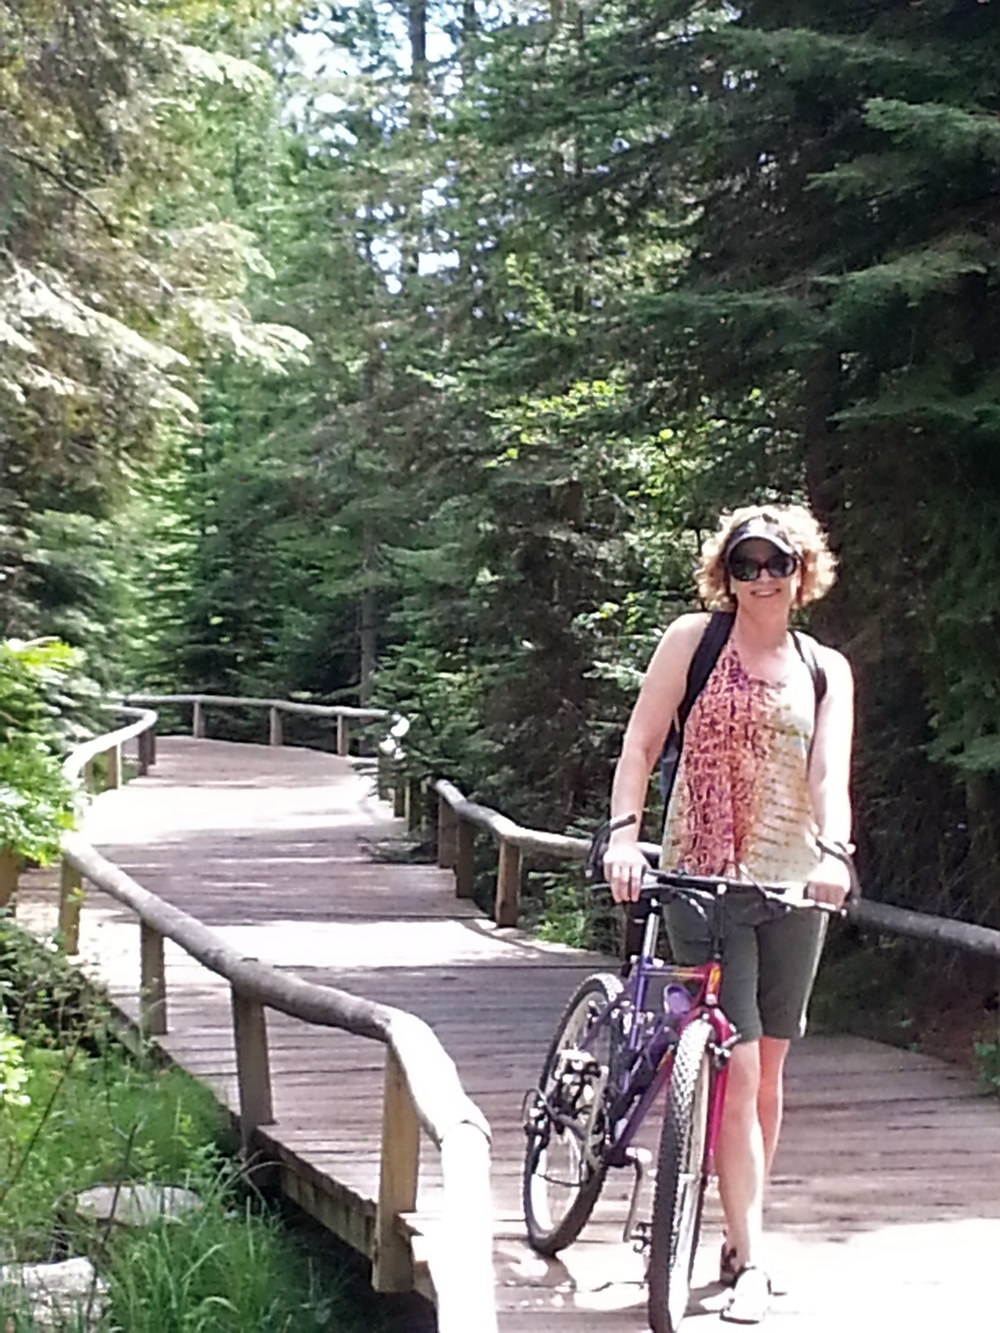 Renée with a  bike on a wooden walkway surrounded by trees.